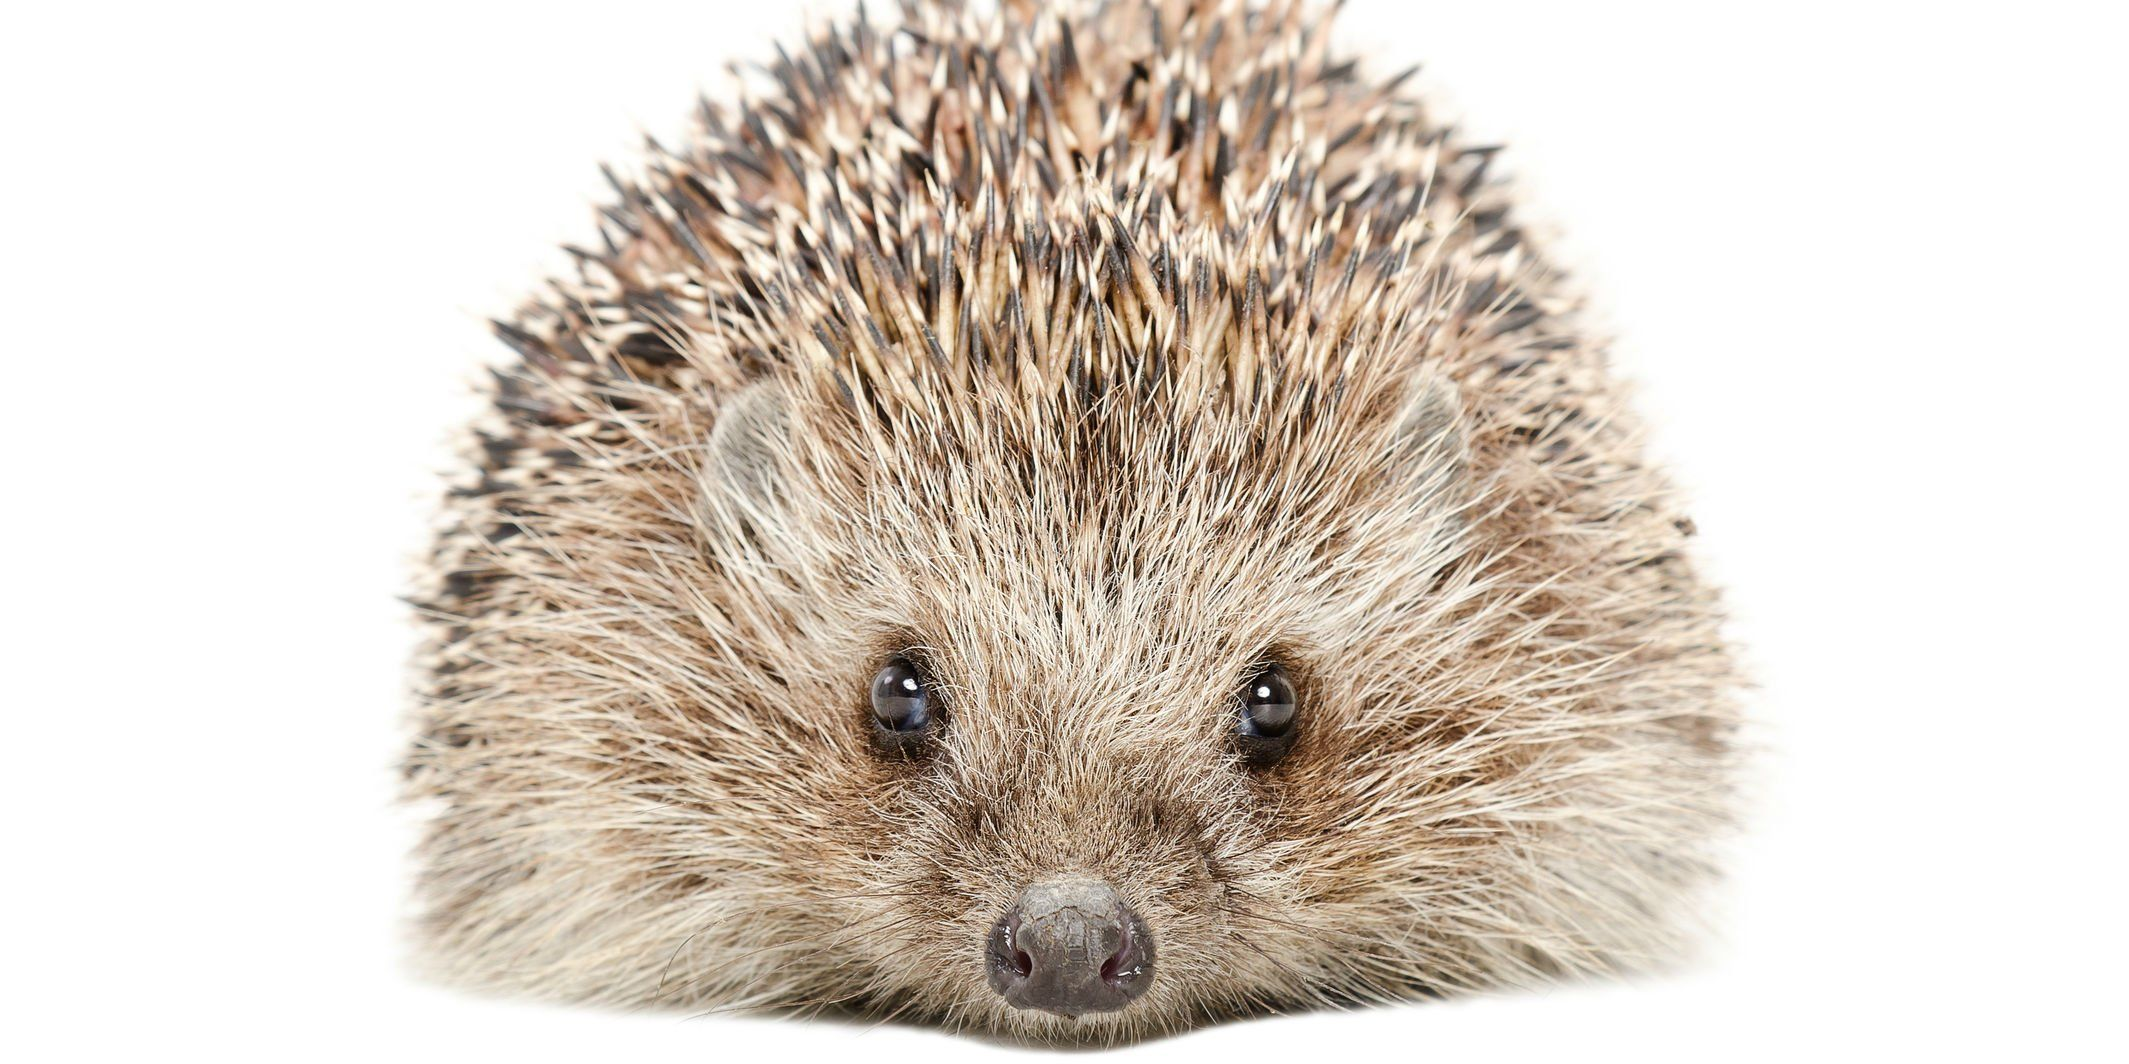 American Airlines just banned emotional support hedgehogs